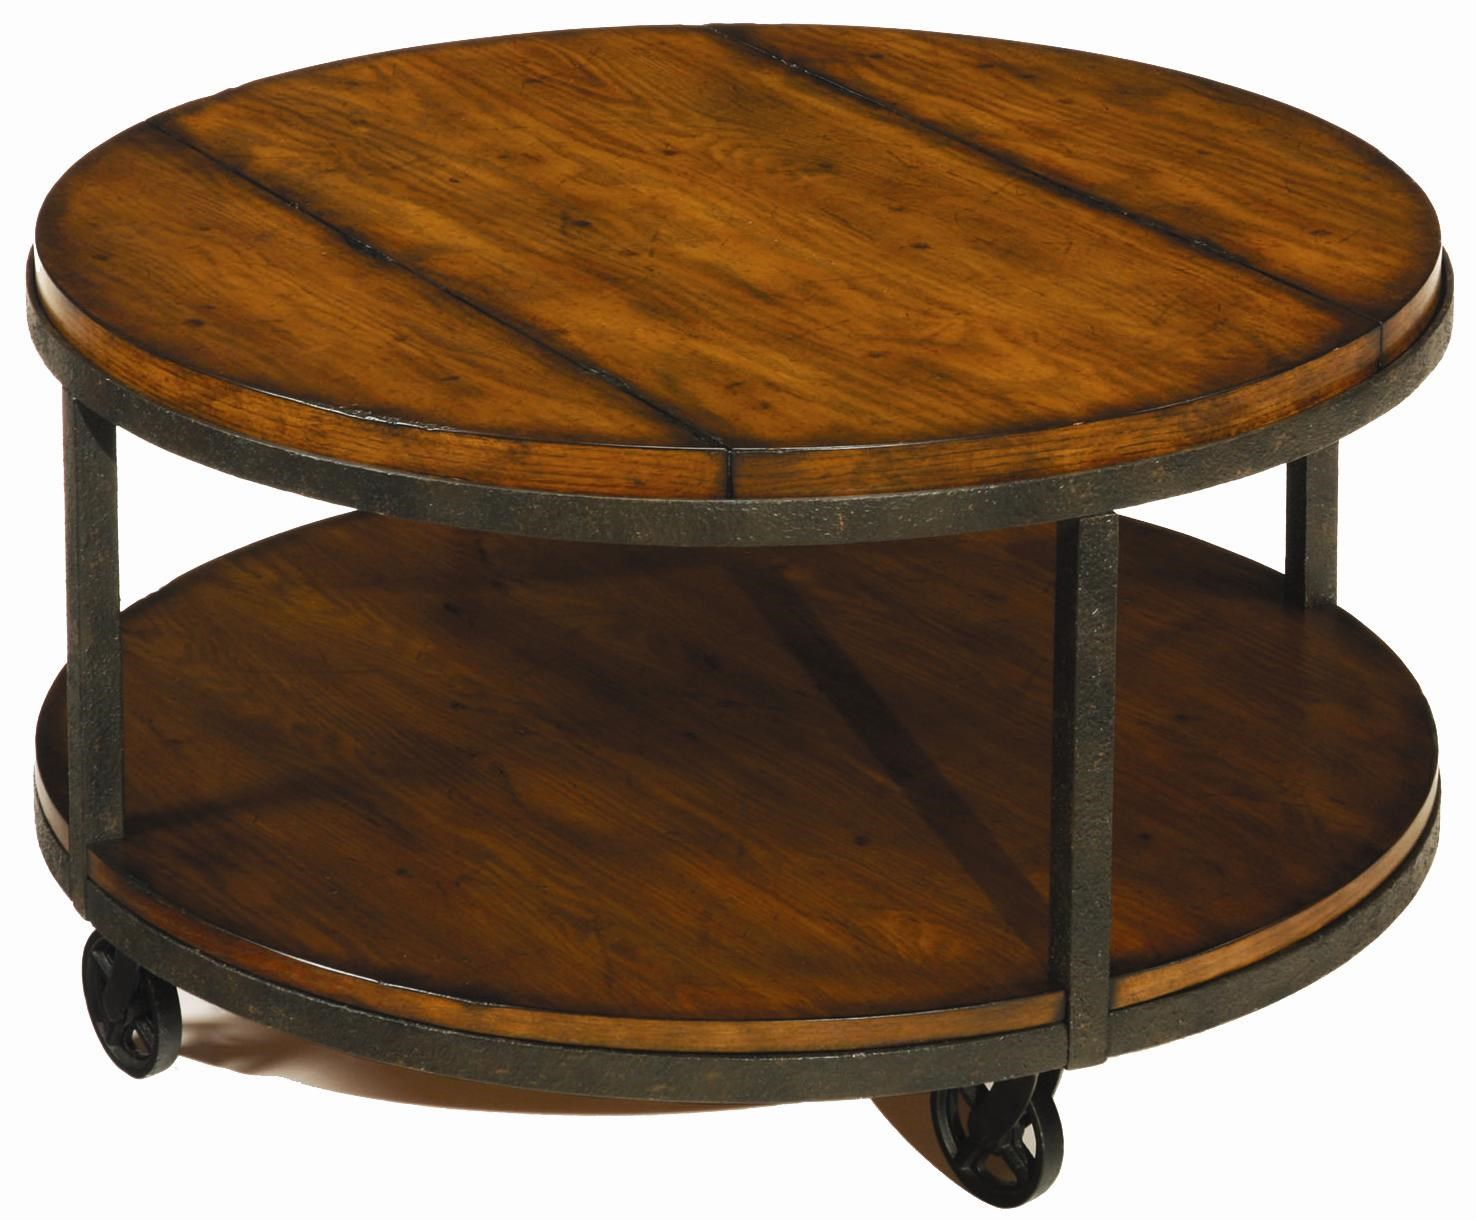 Hammary Baja Round Cocktail Table With Shelf And Wheels